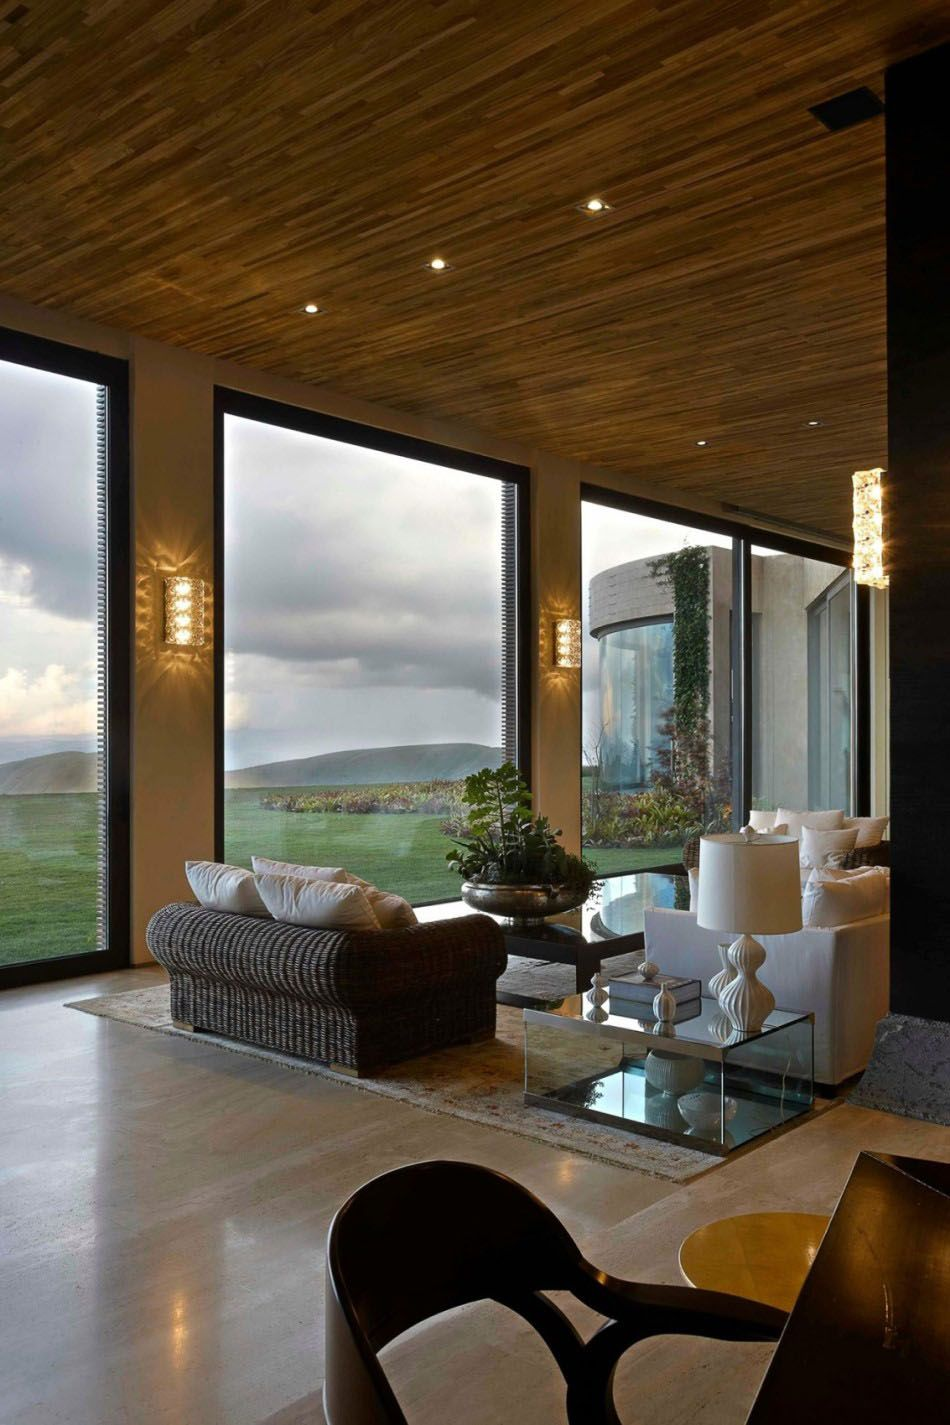 30 Floor To Ceiling Windows With Natural Light Floor To Ceiling